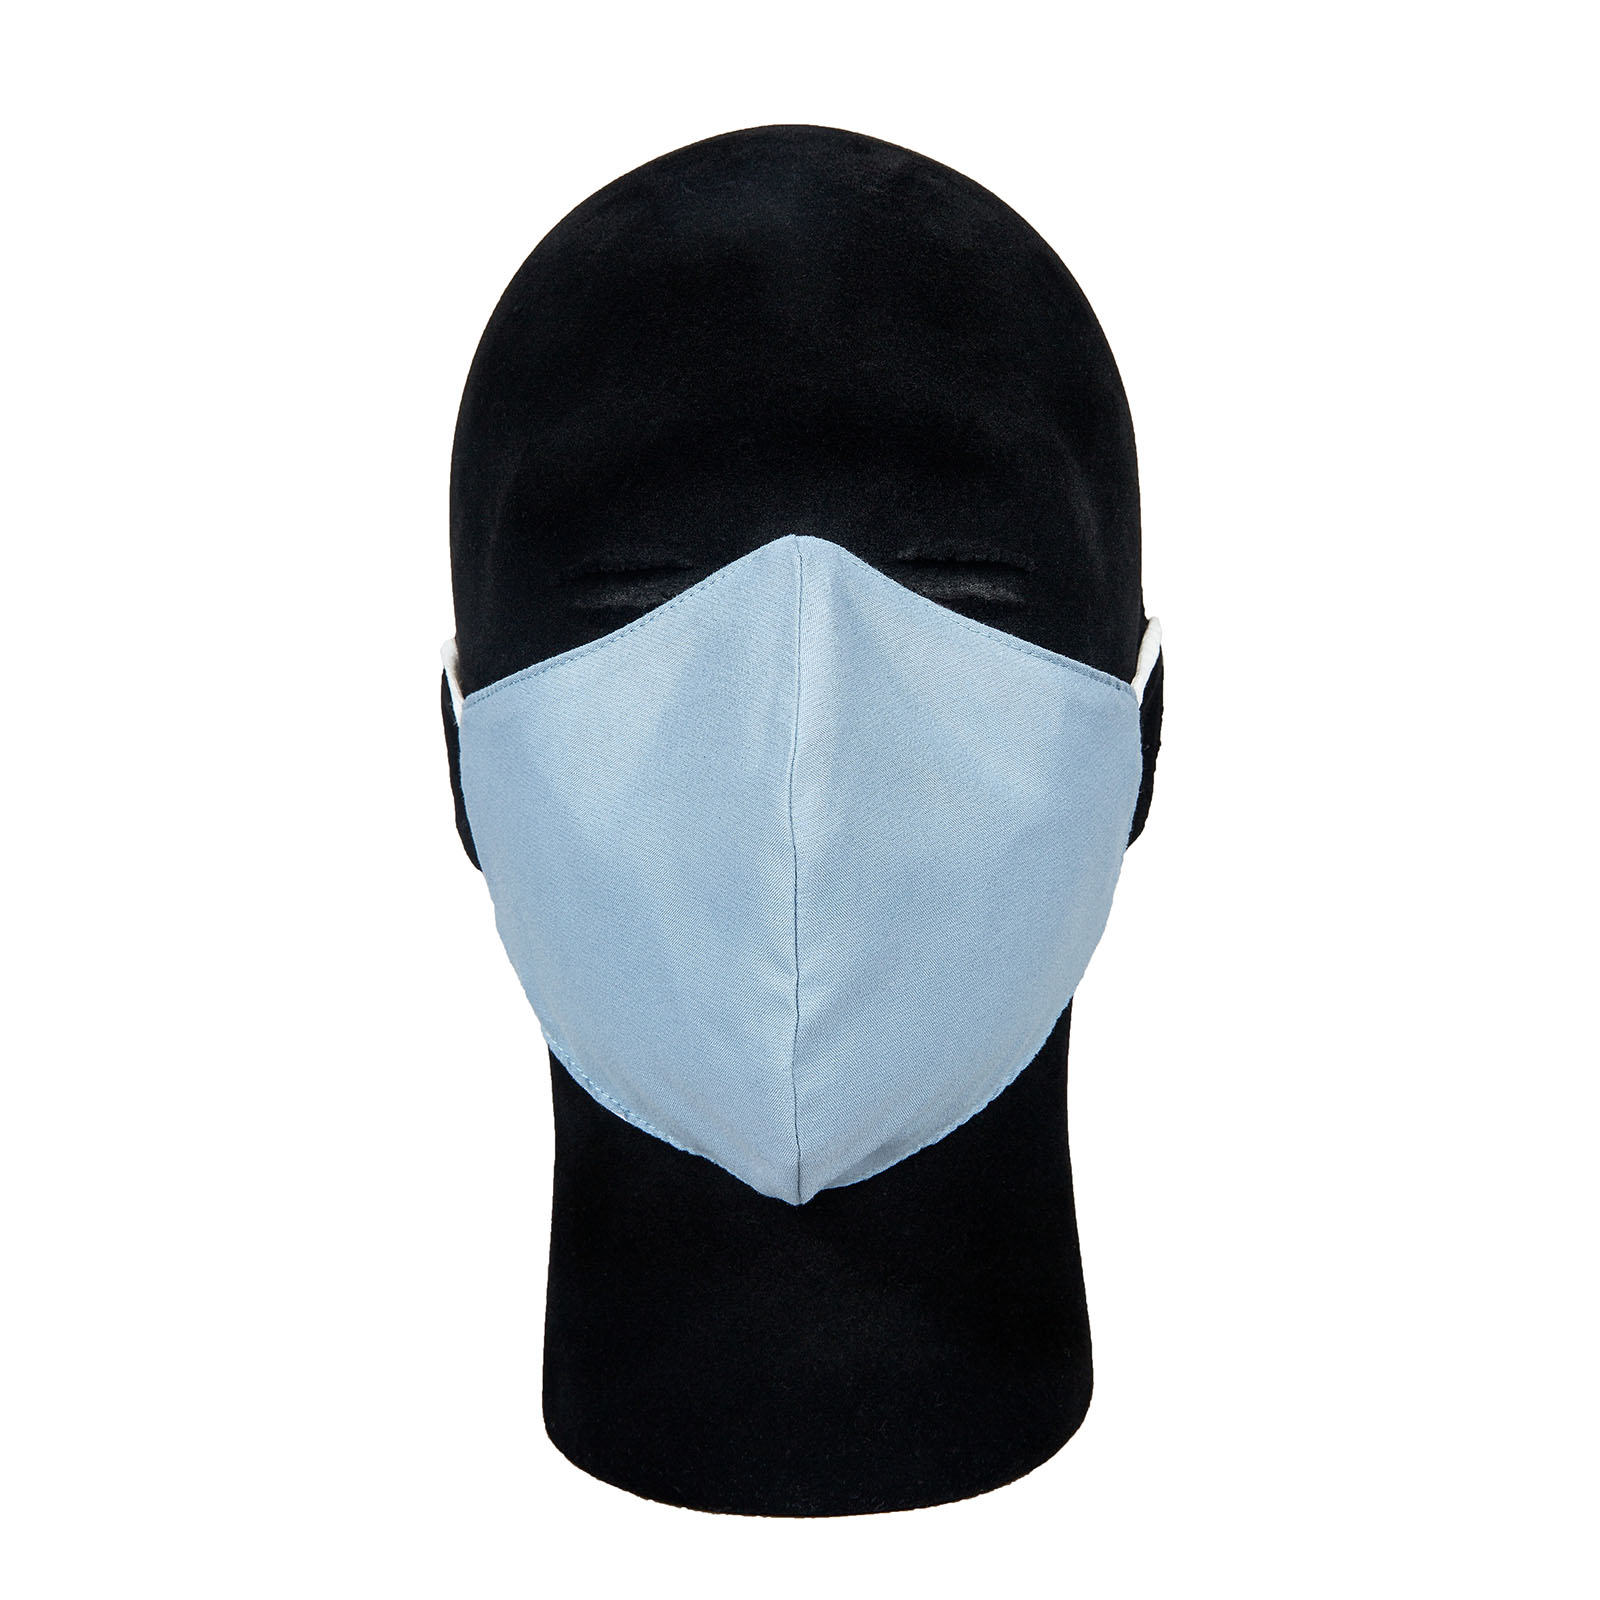 MX9501 Antibacterial Reusable Protective Face Mask Covers